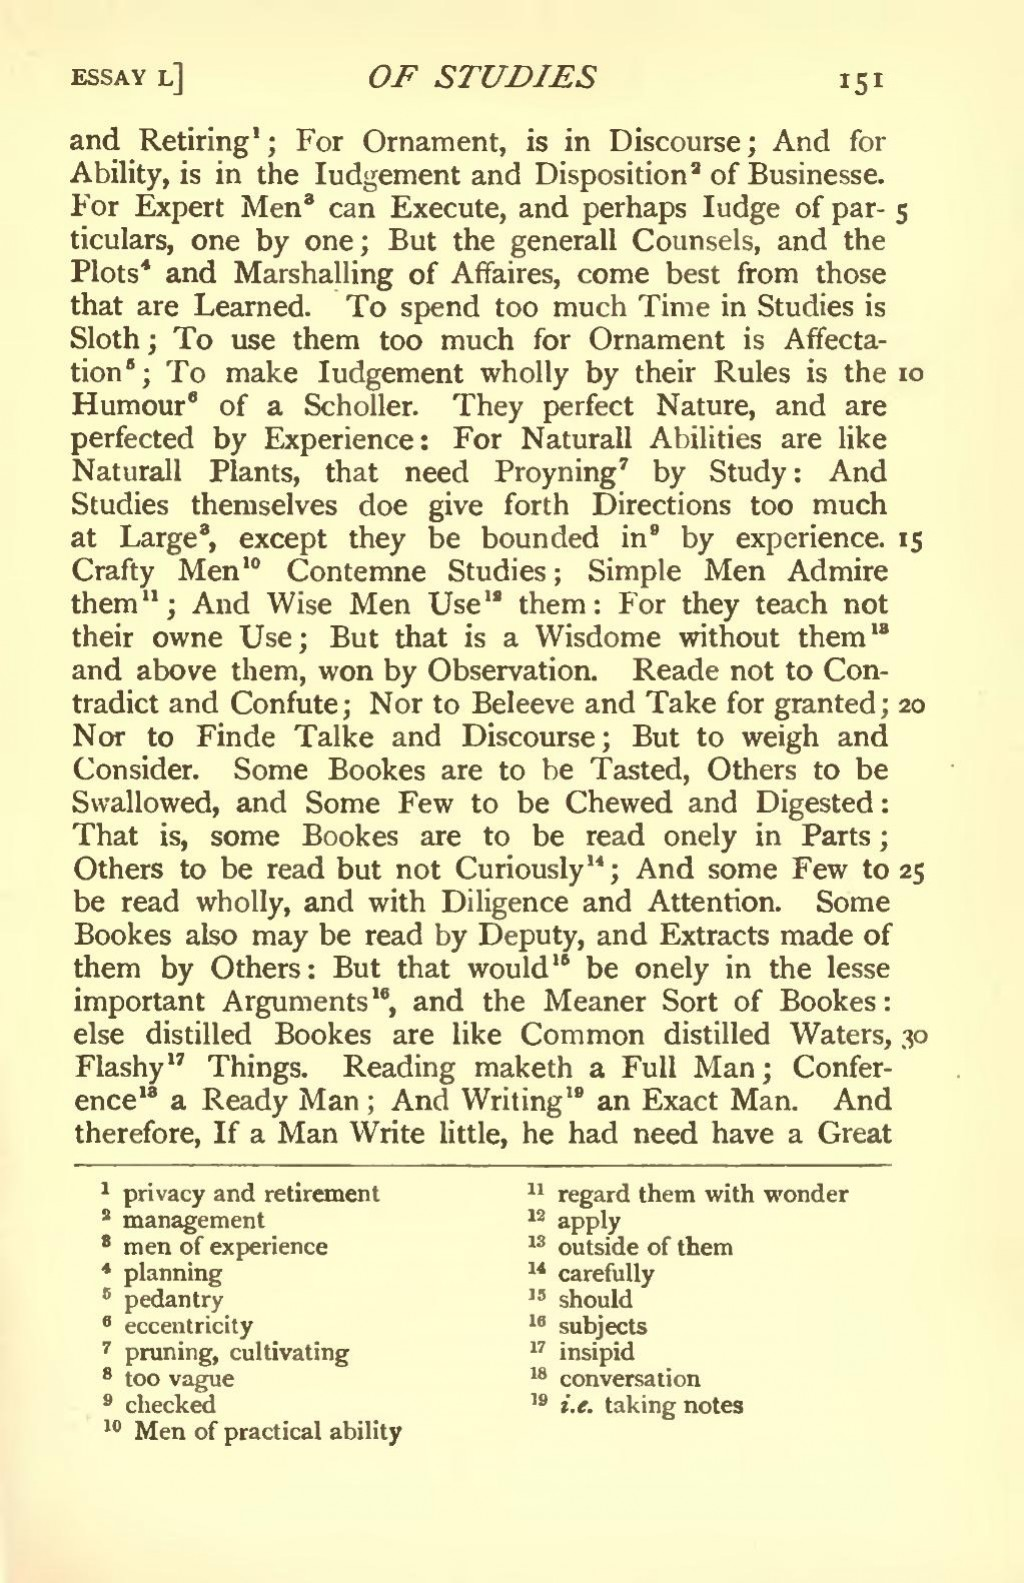 013 Essay Example Page175 1024px Bacons 1908 West Djvu Amazing Essays Francis Bacon Google Books Of Truth Quiz Bacon's Summary Large